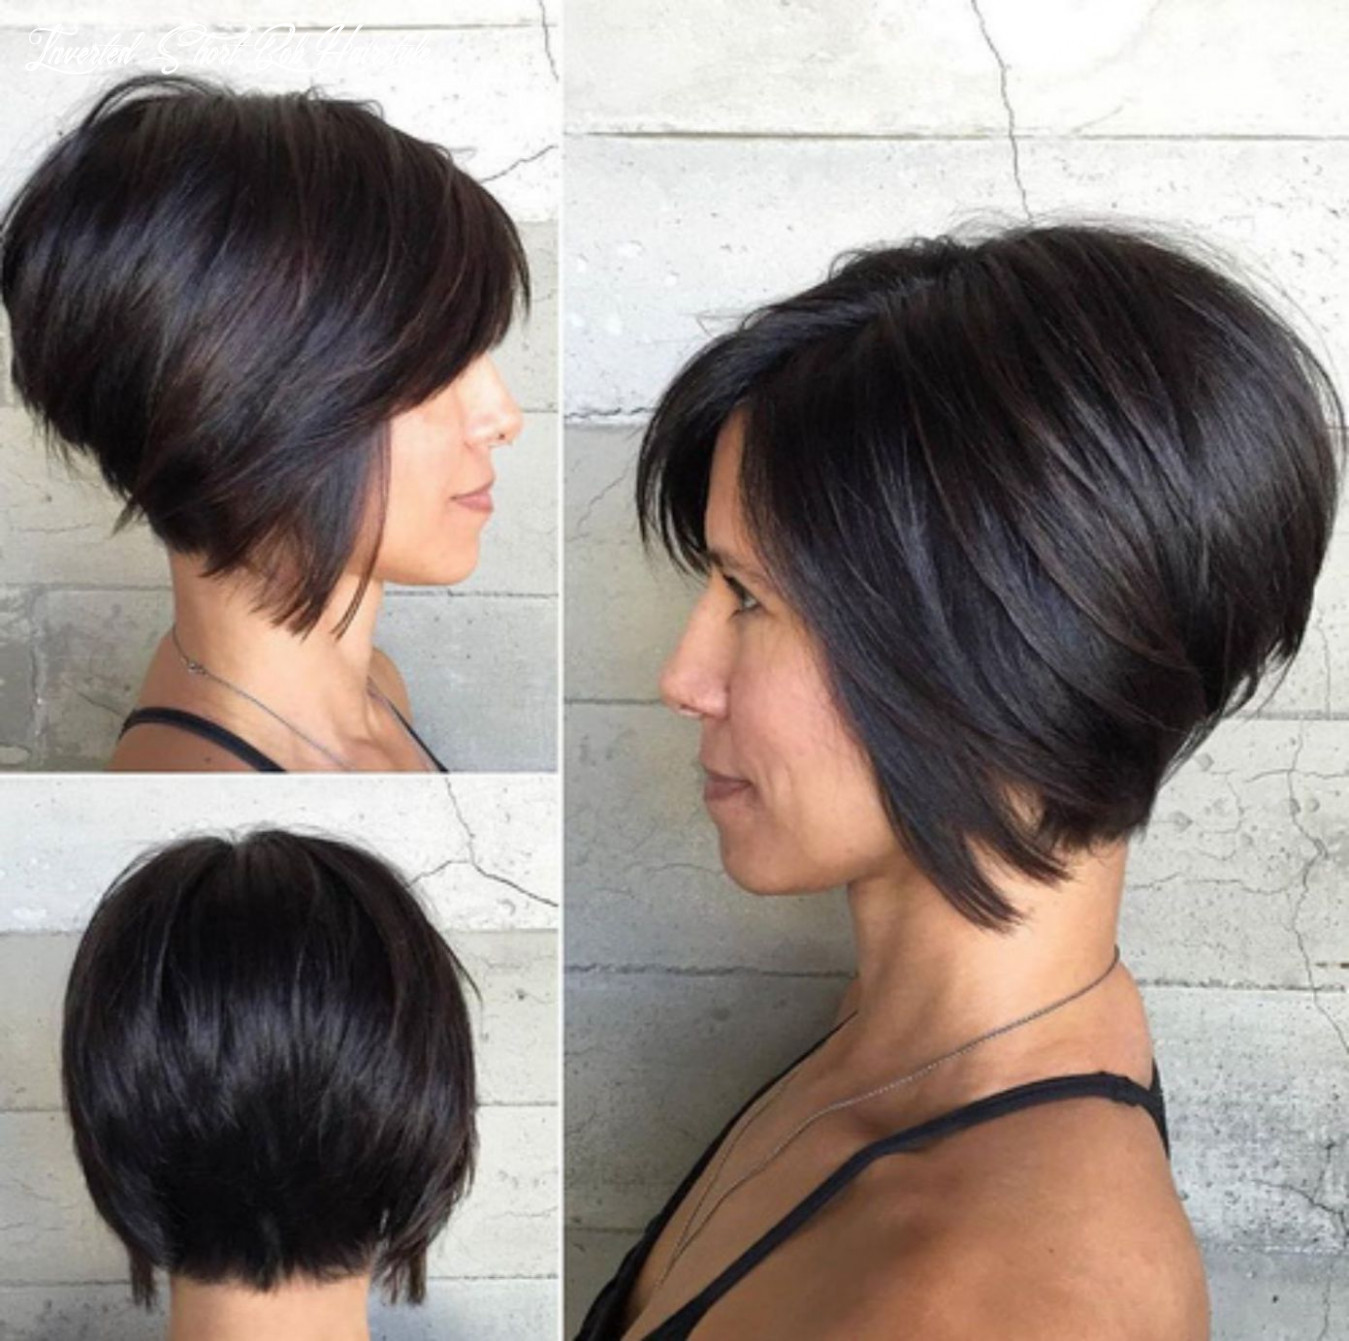 Pin on female hair style inverted short bob hairstyle